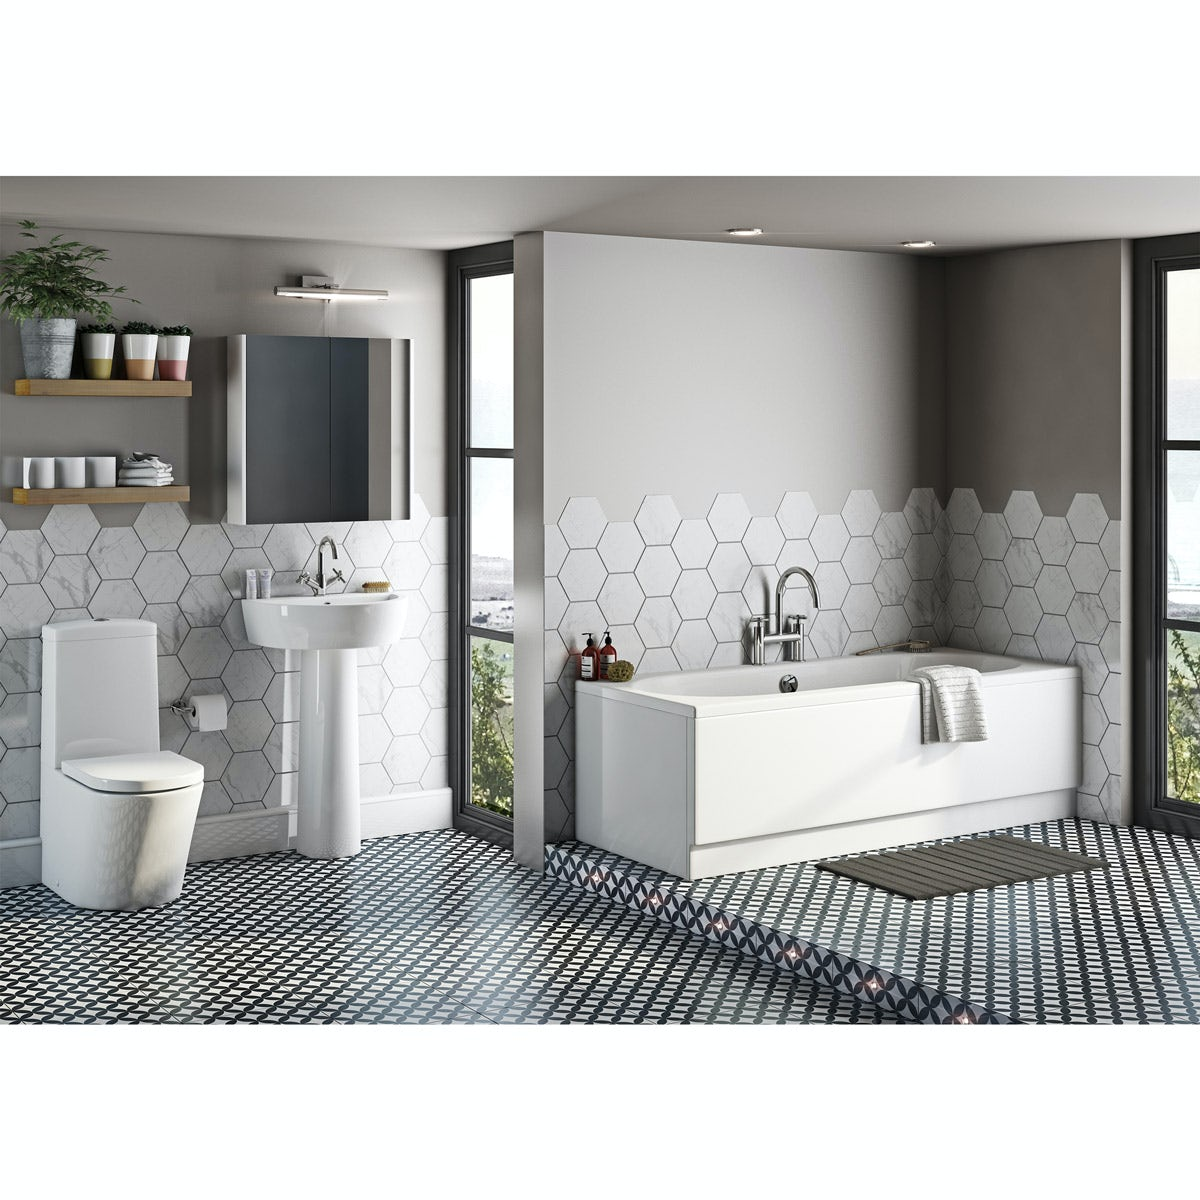 Charmant Mode Tate Bathroom Suite With Islington Double Ended Bath